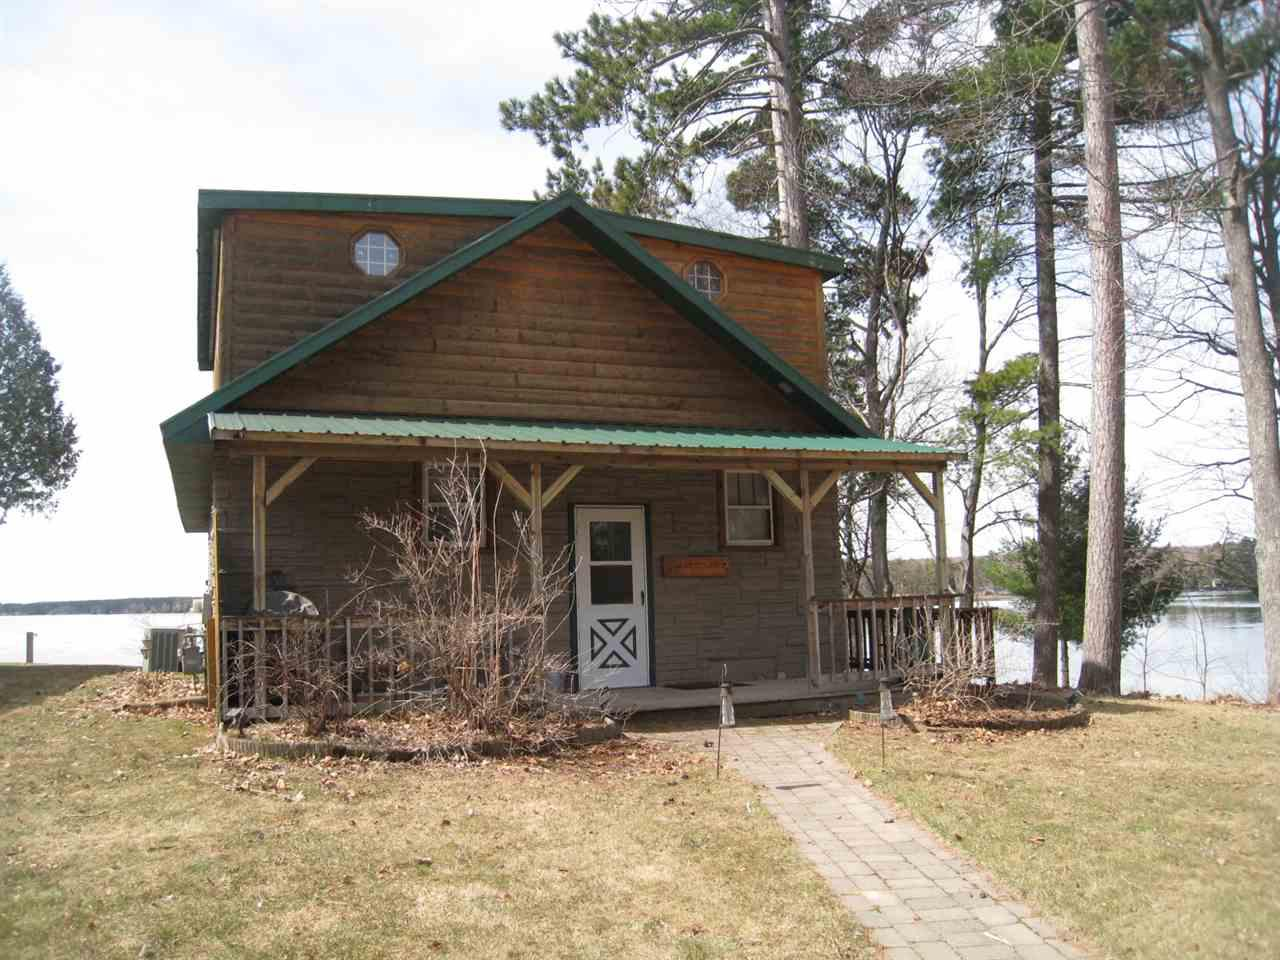 Awesome waterfront home on the beautiful 2,000 acre Lake Metonga. This walk-out home is in very good condition and offers 4 bedrooms and 3.5 baths. The open floorplan offers a full wall of windows overlooking the lake. The kitchen has maple cabinets. This flows into the dining area and the living room with an electric fireplace. 12? patio doors lead to a deck overlooking the back yard and lake. 100? dock w/ramp and jet-ski lift included. Most furnishings included.